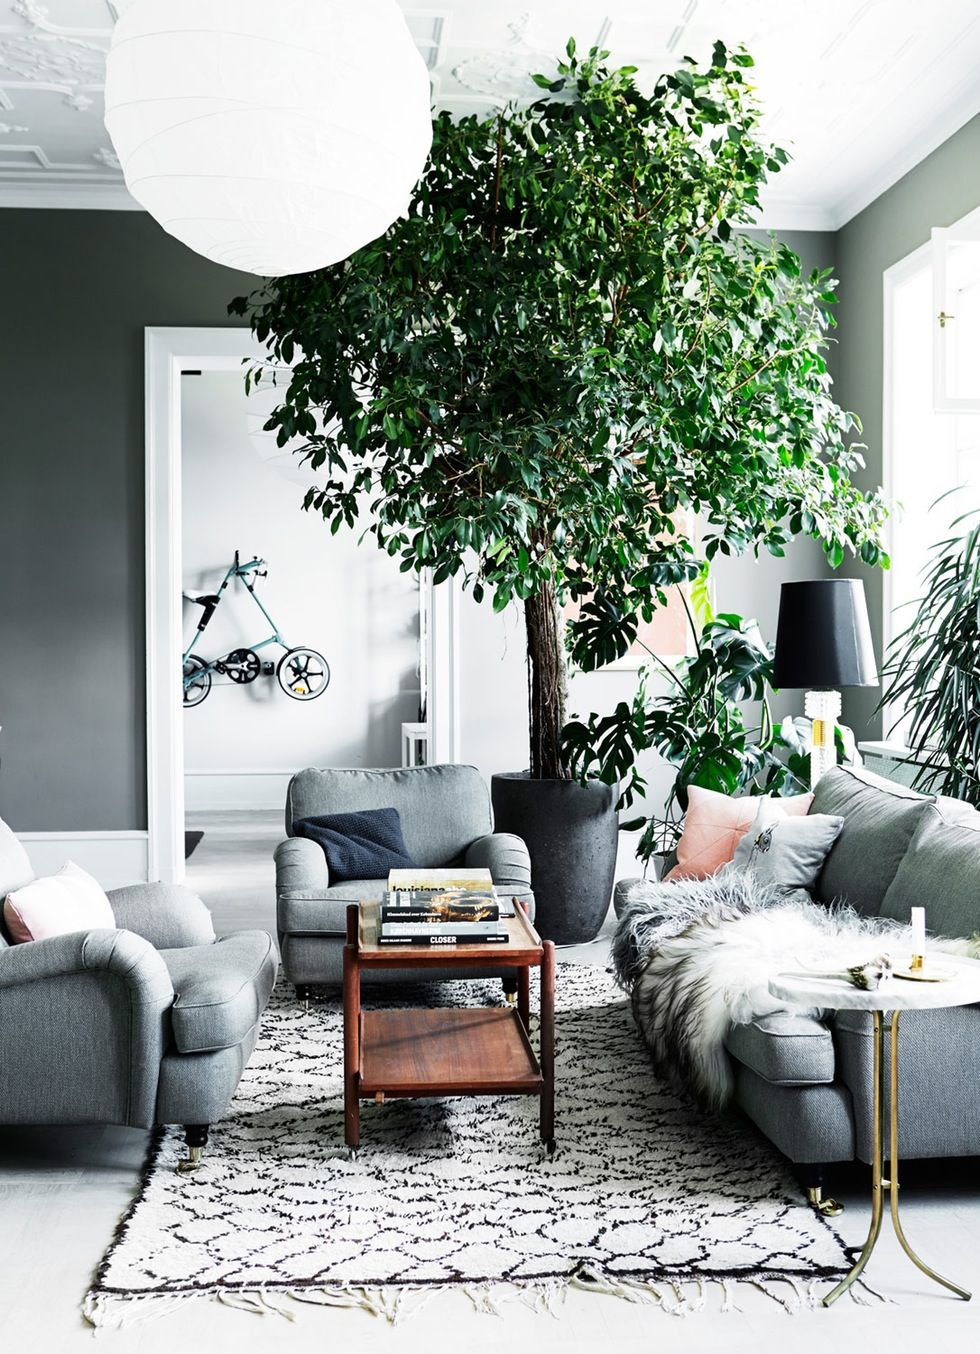 Delicious Interiors With Natural Materials And Gorgeous: Luxurious Apartment With A Delicious Green Oasis (Daily